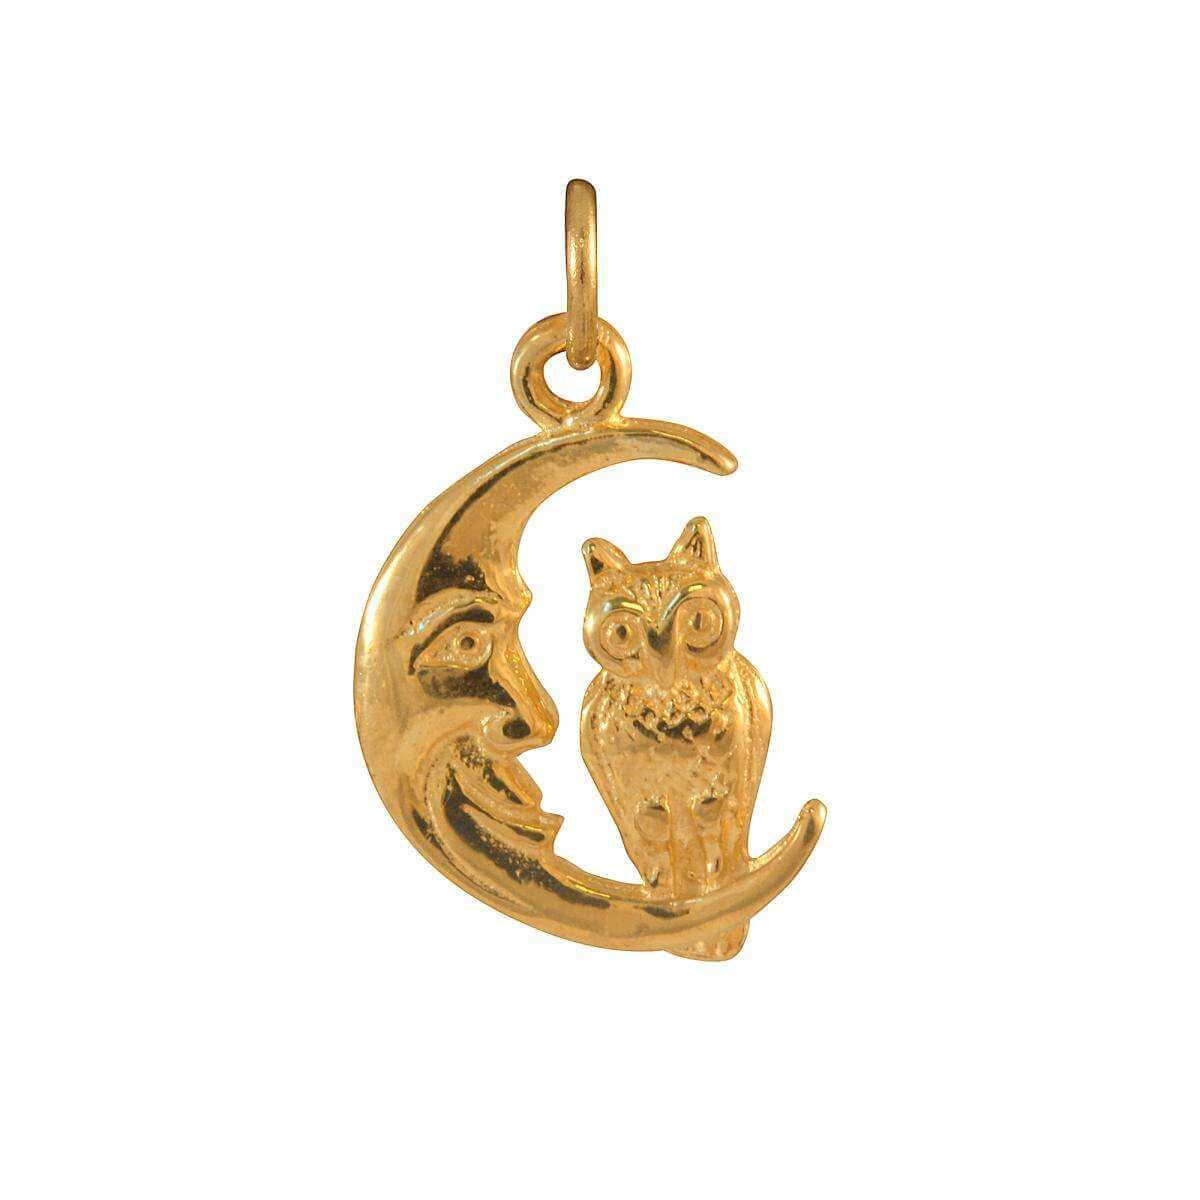 9ct Gold Owl Sitting on Moon Charm